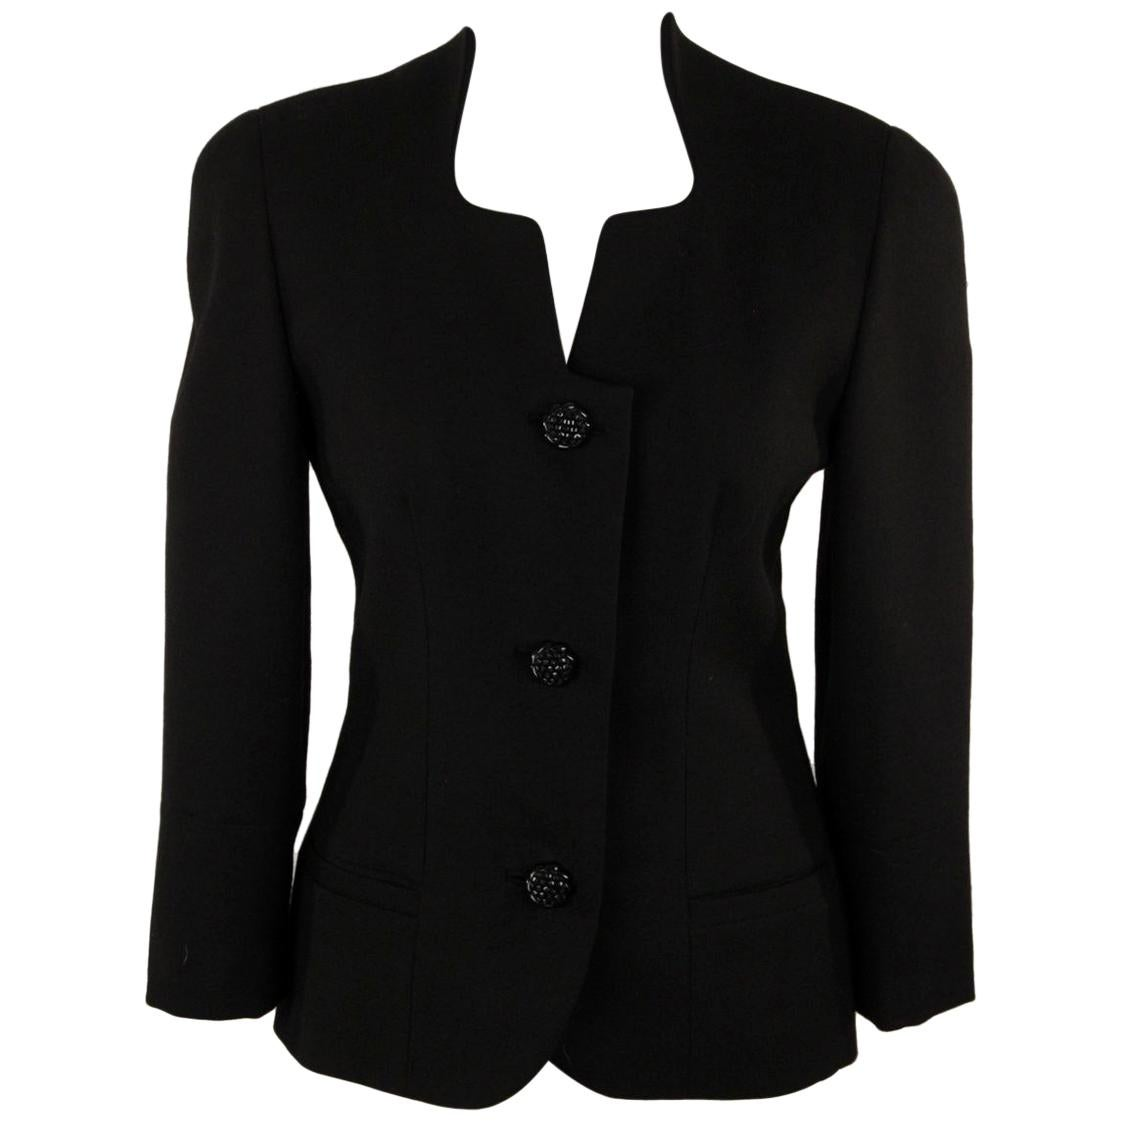 Gai Mattiolo Collarless Jacket with Lace Back Size 42